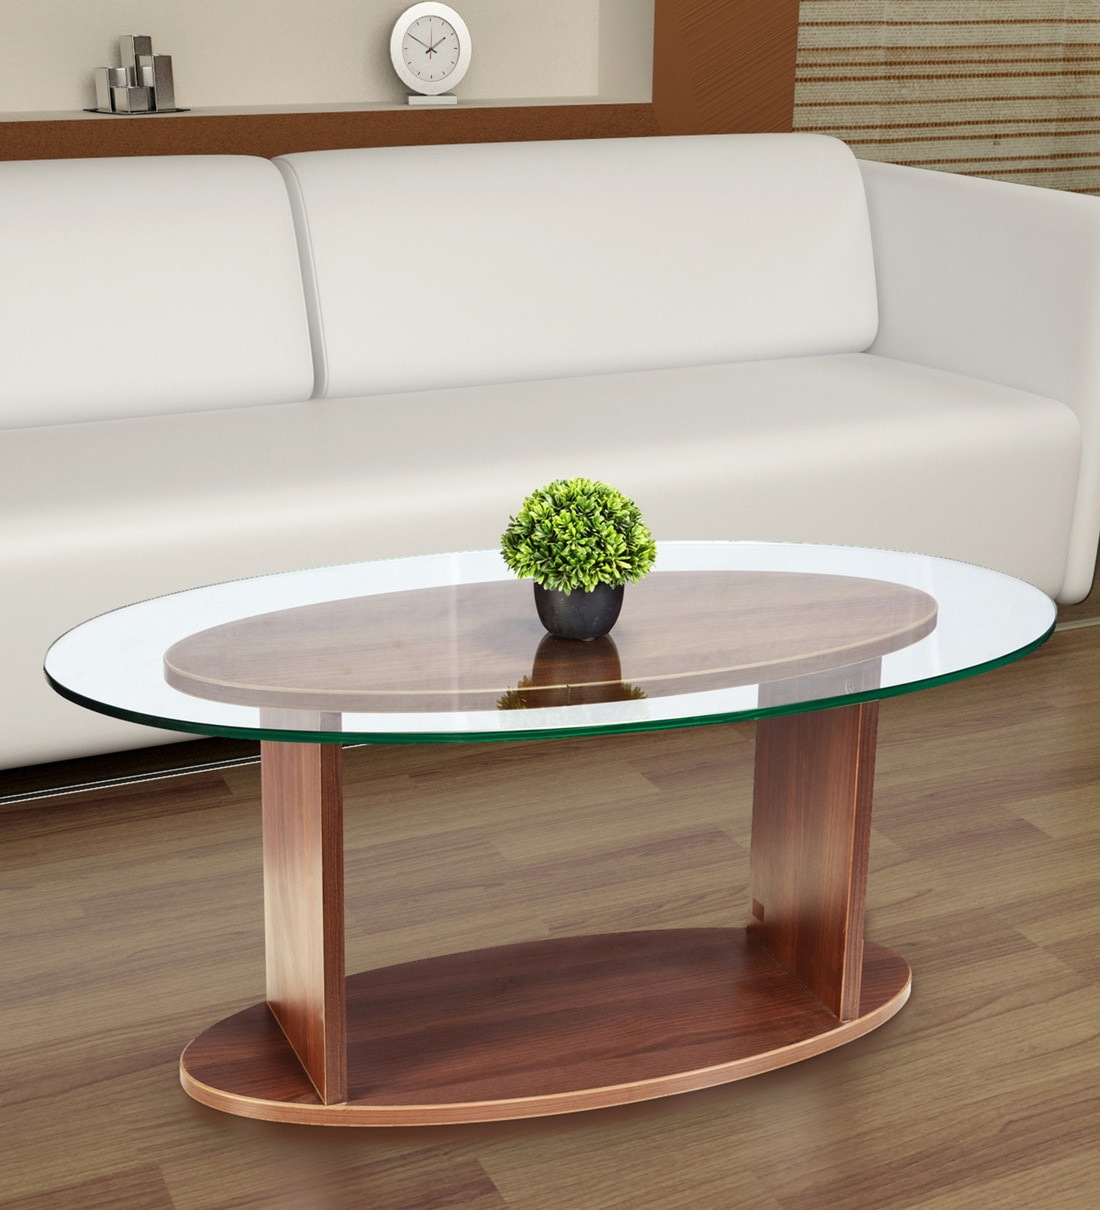 oval shaped glass top coffee table in walnut finish